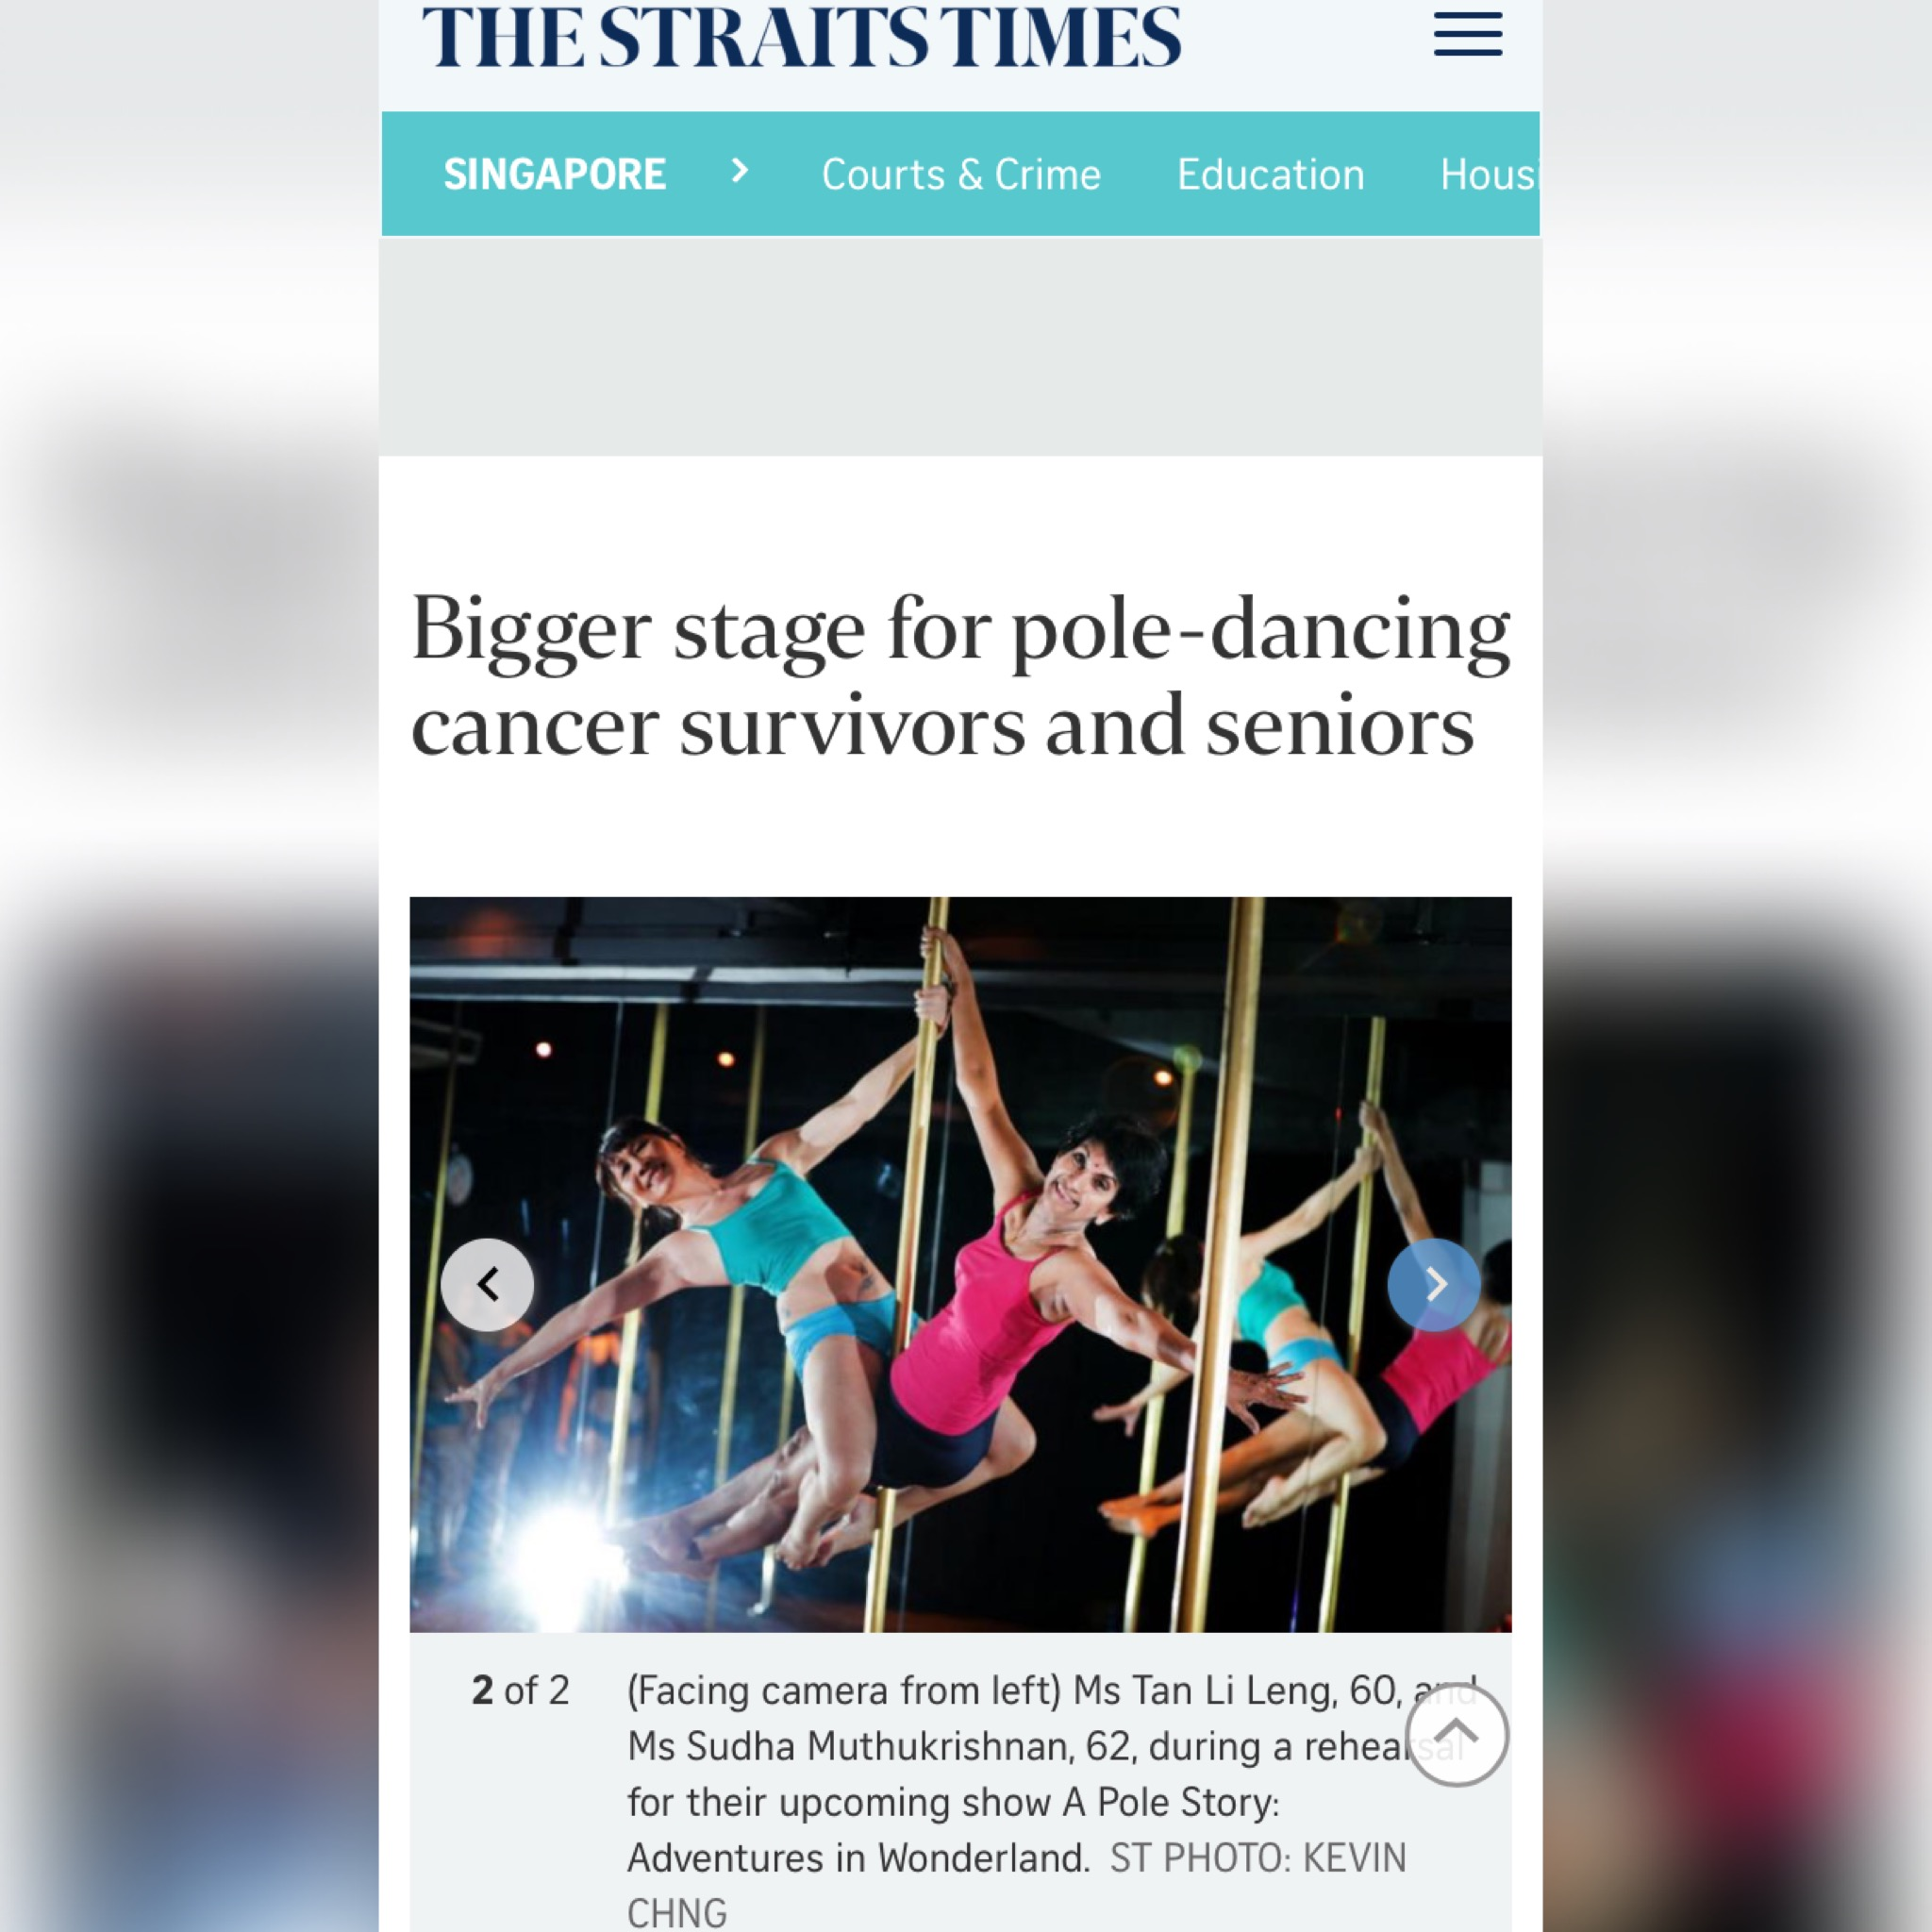 PR - A Pole Story 2018 - Straits Times - Pole-dancing breast cancer survivors to perform on Saturday - screen grab 01.jpg